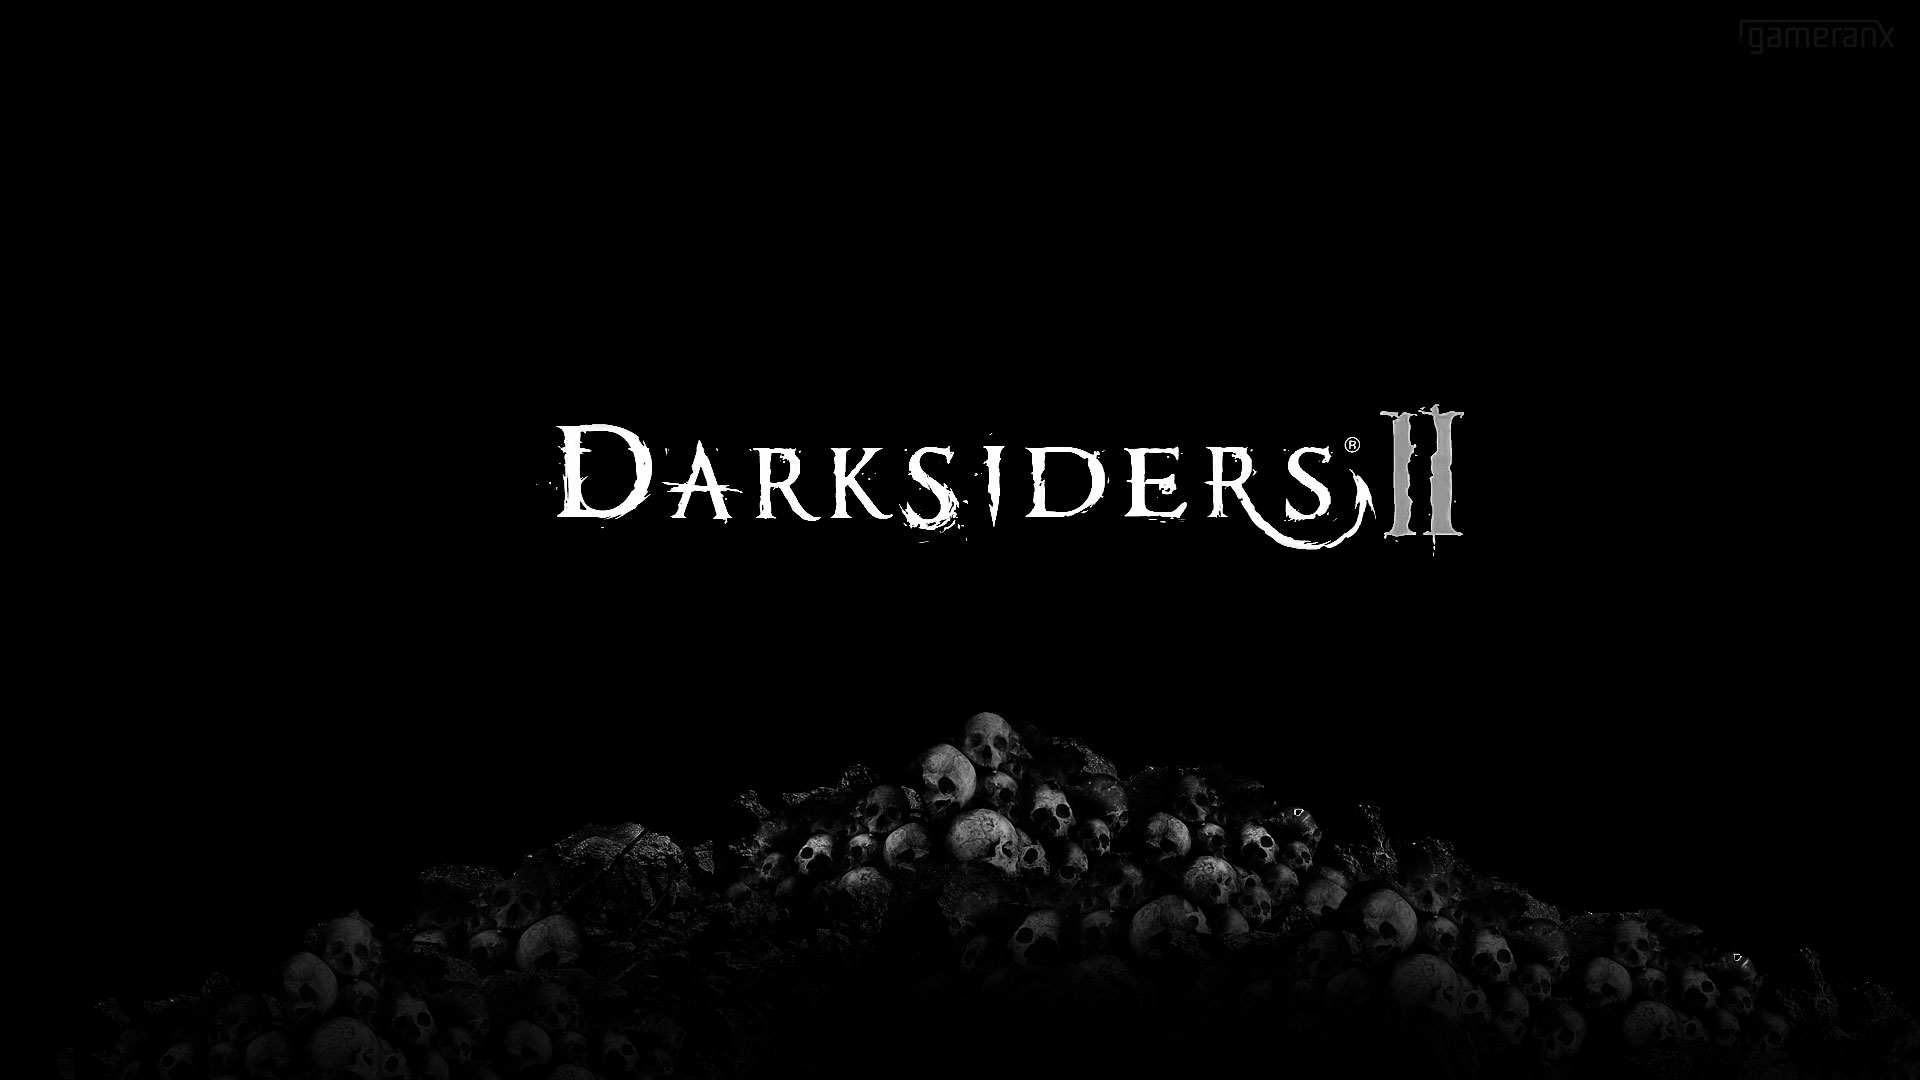 darksiders 2 Computer Wallpapers, Desktop Backgrounds 1920x1080 Id